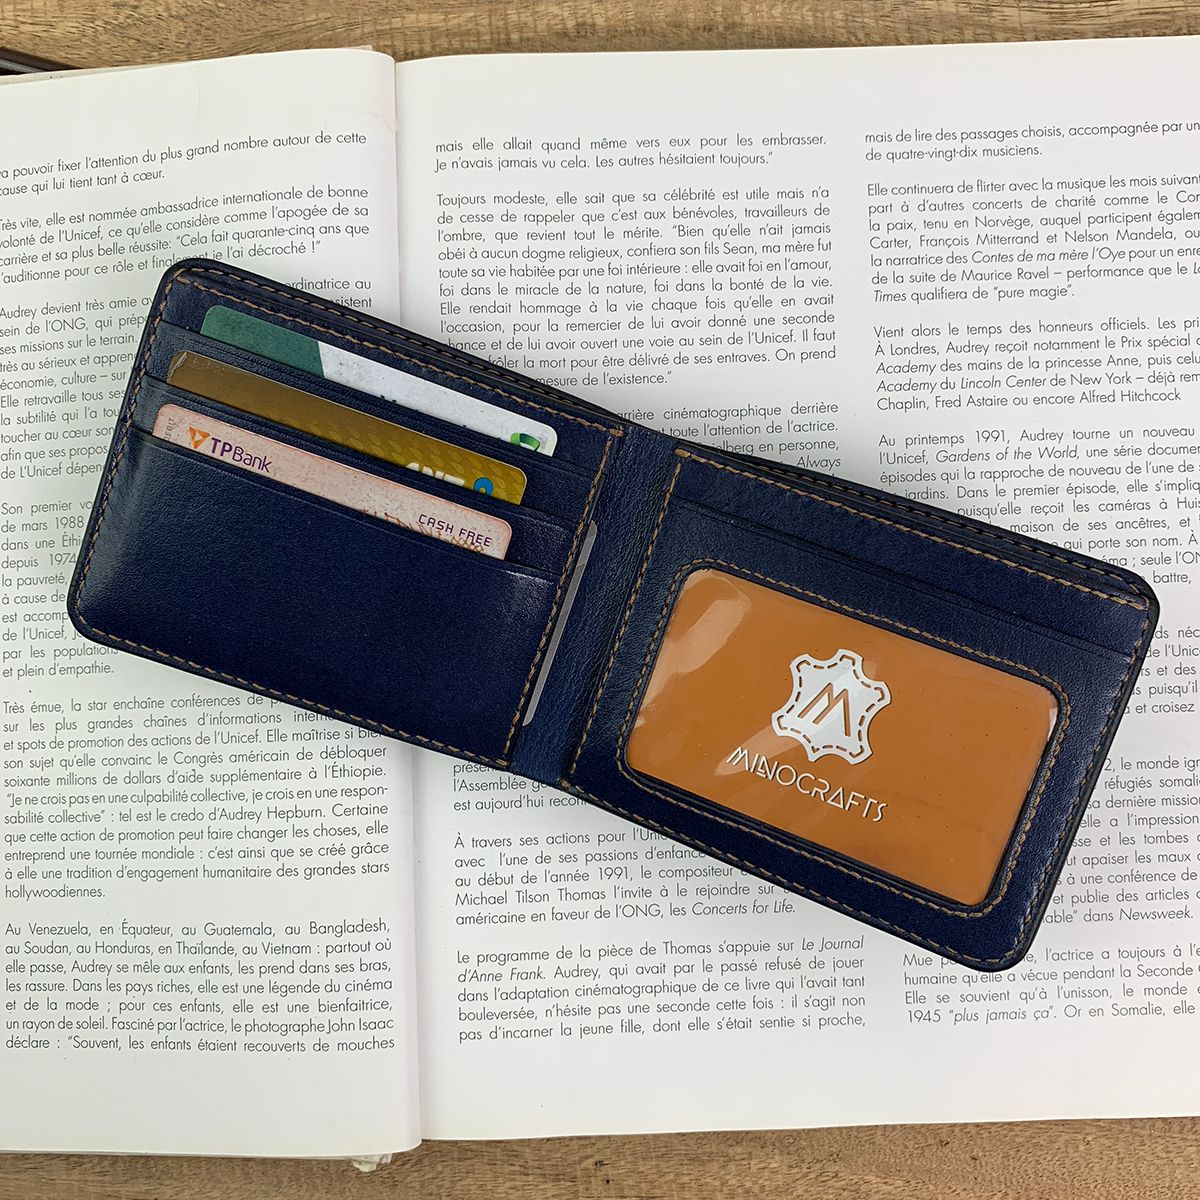 Leather Wallet Classic Wallet Gifts For Her Blue Leather Wallet Minimal Leather Wallet Leather Wallet